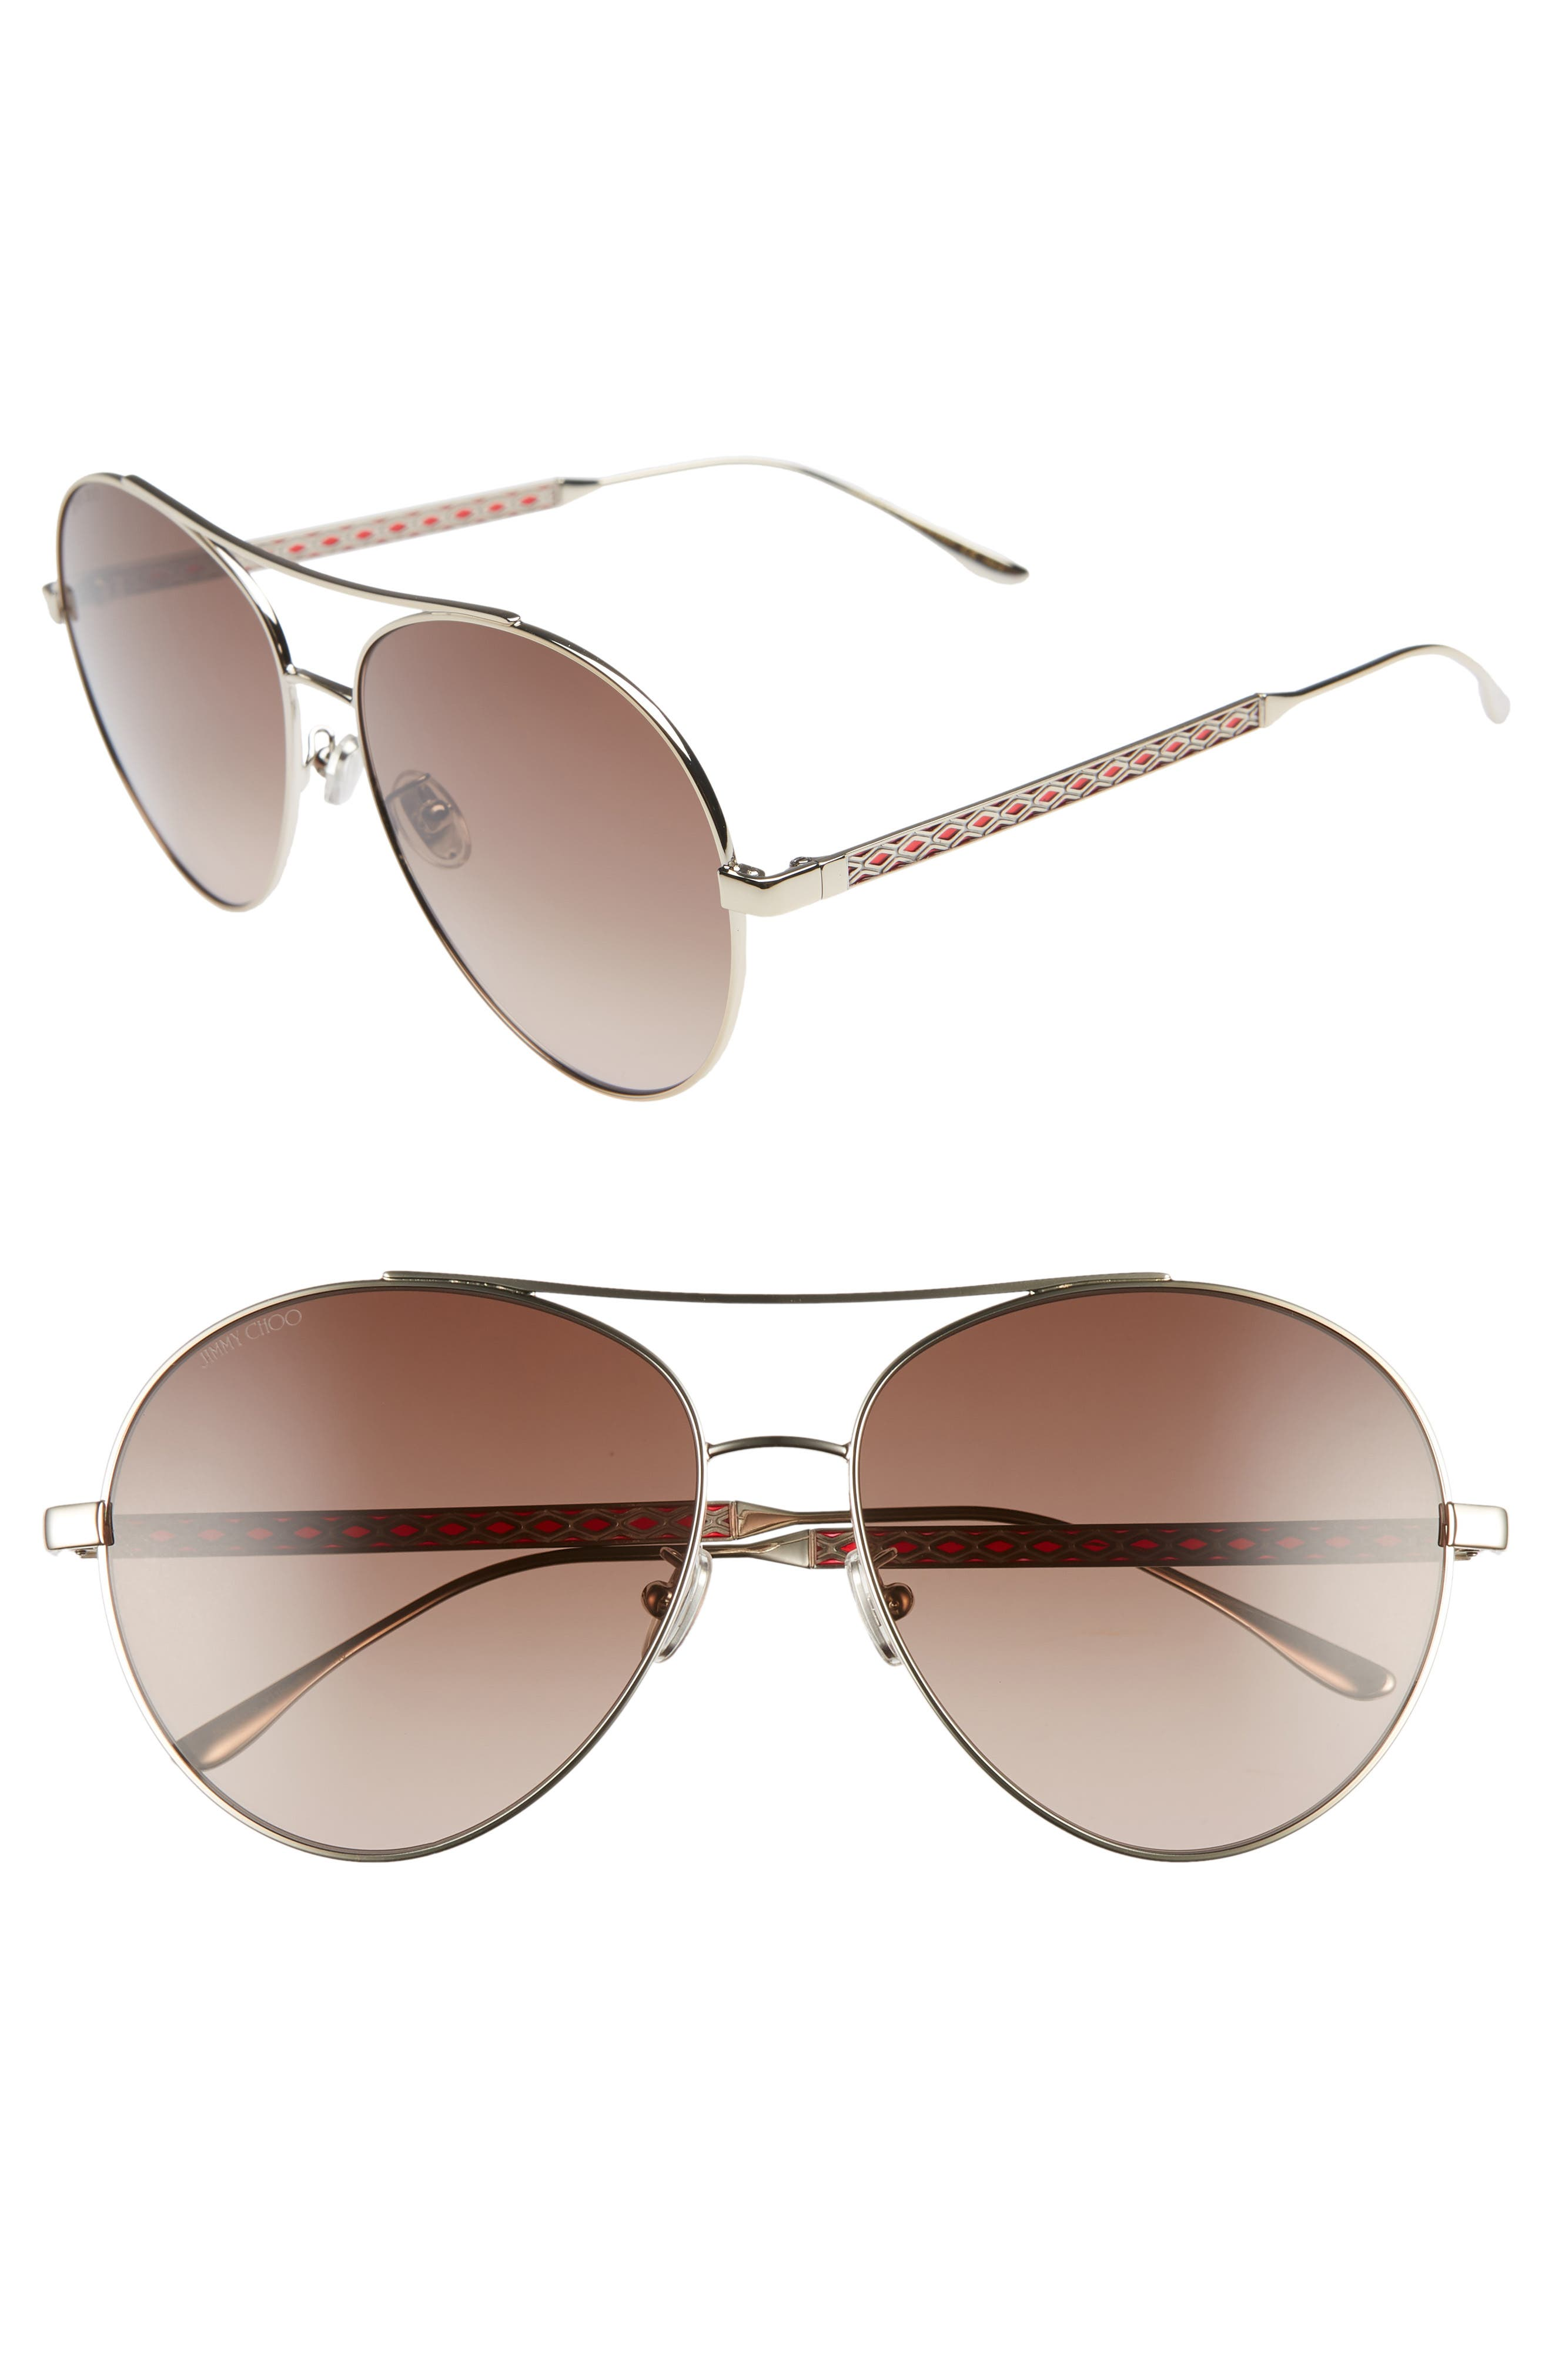 Noria 61Mm Special Fit Gradient Aviator Sunglasses - Gold/ Red